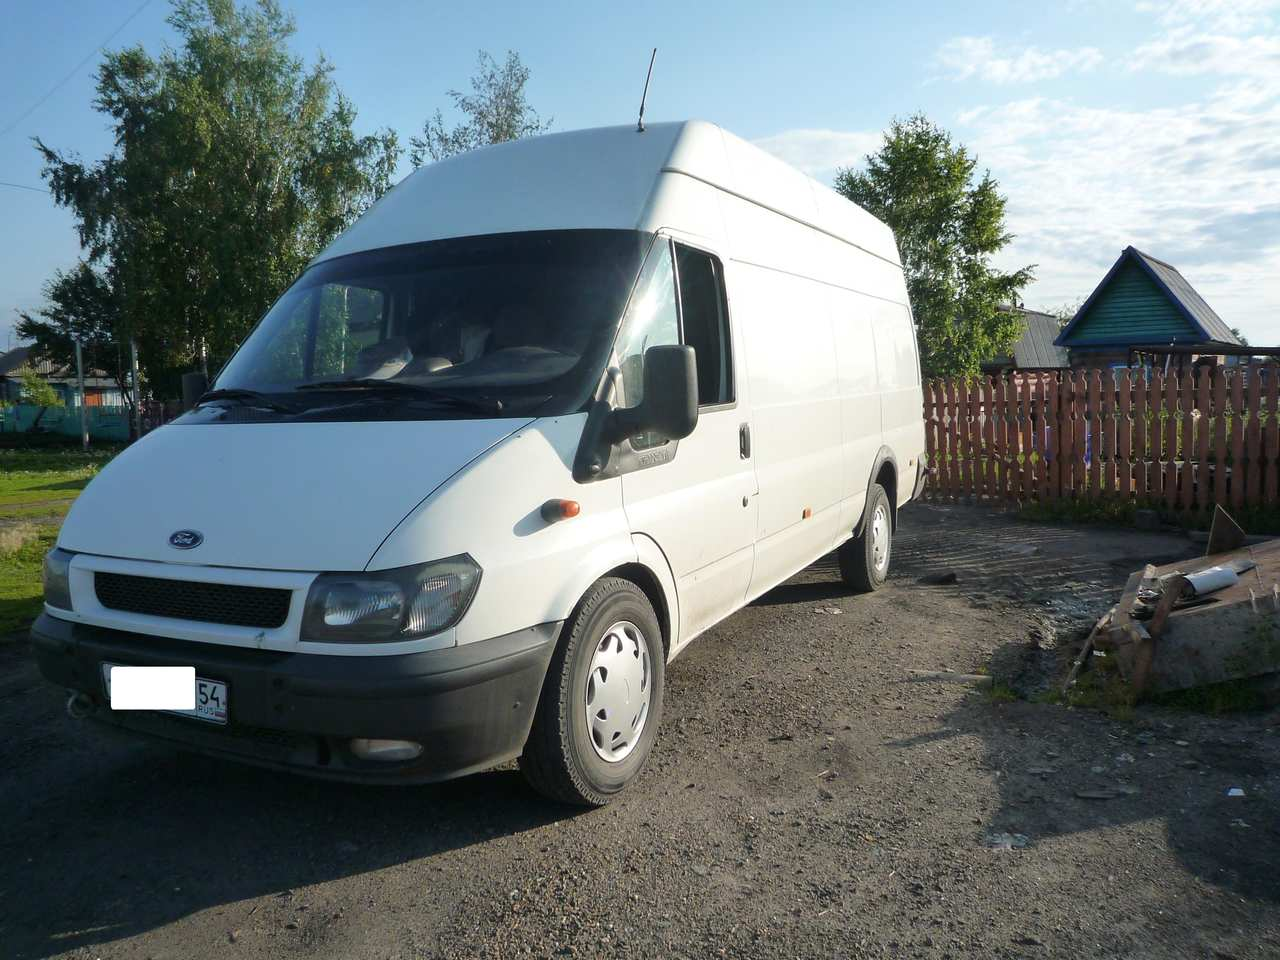 2001 Ford Transit Photos 2 5 Diesel Fr Or Rr Manual